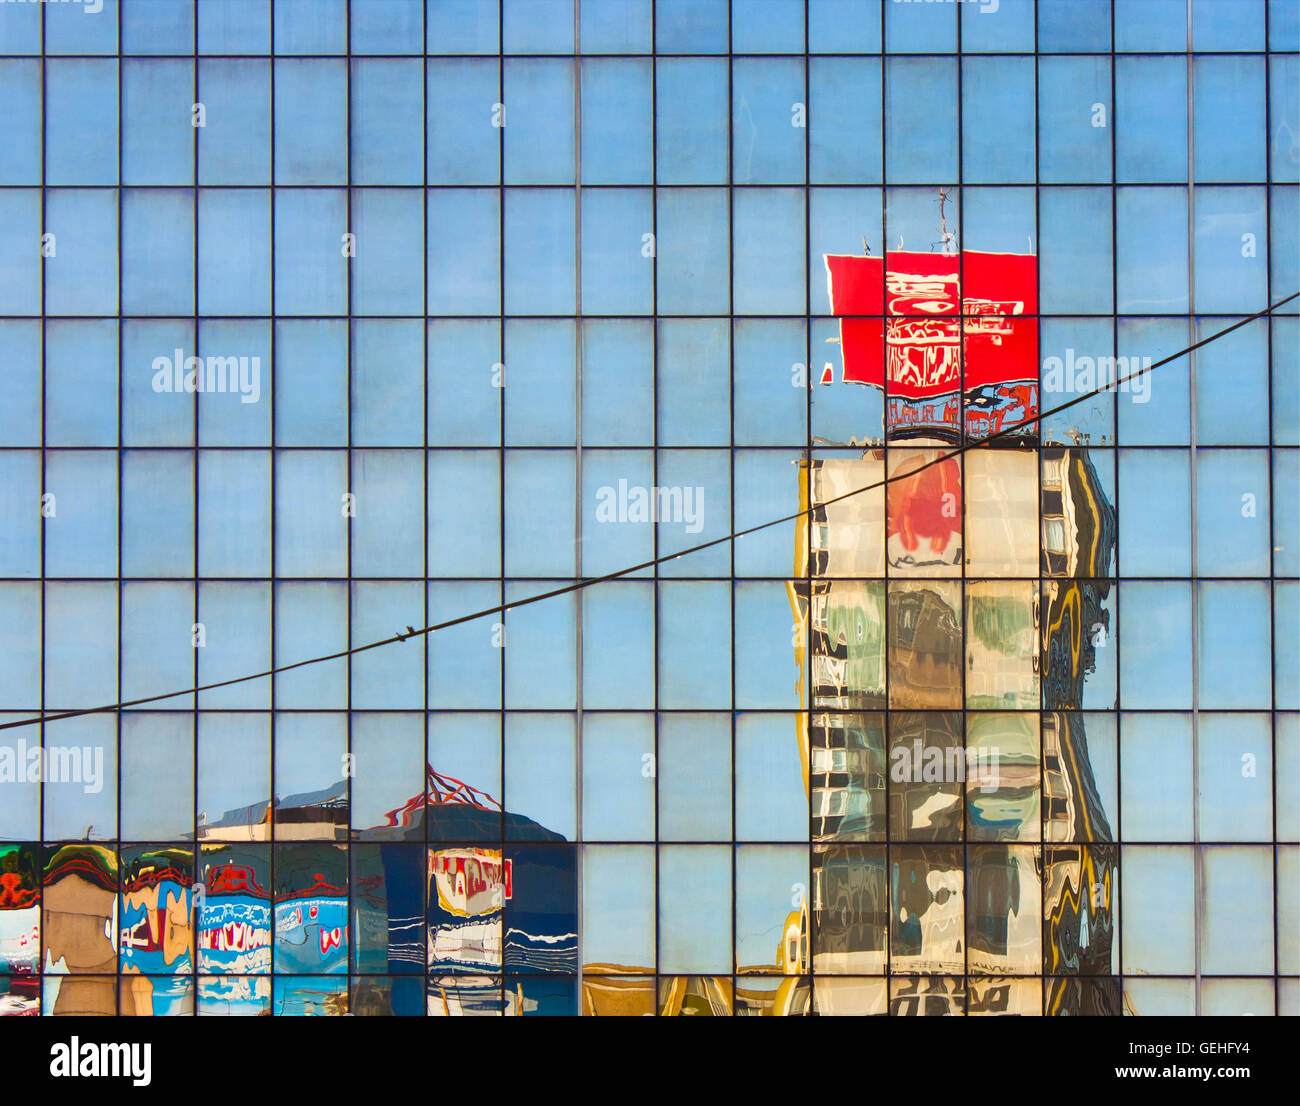 City old buildings and skyscraper with billboards mirrored in a  glass building,  melting on a hot summer day - Stock Image